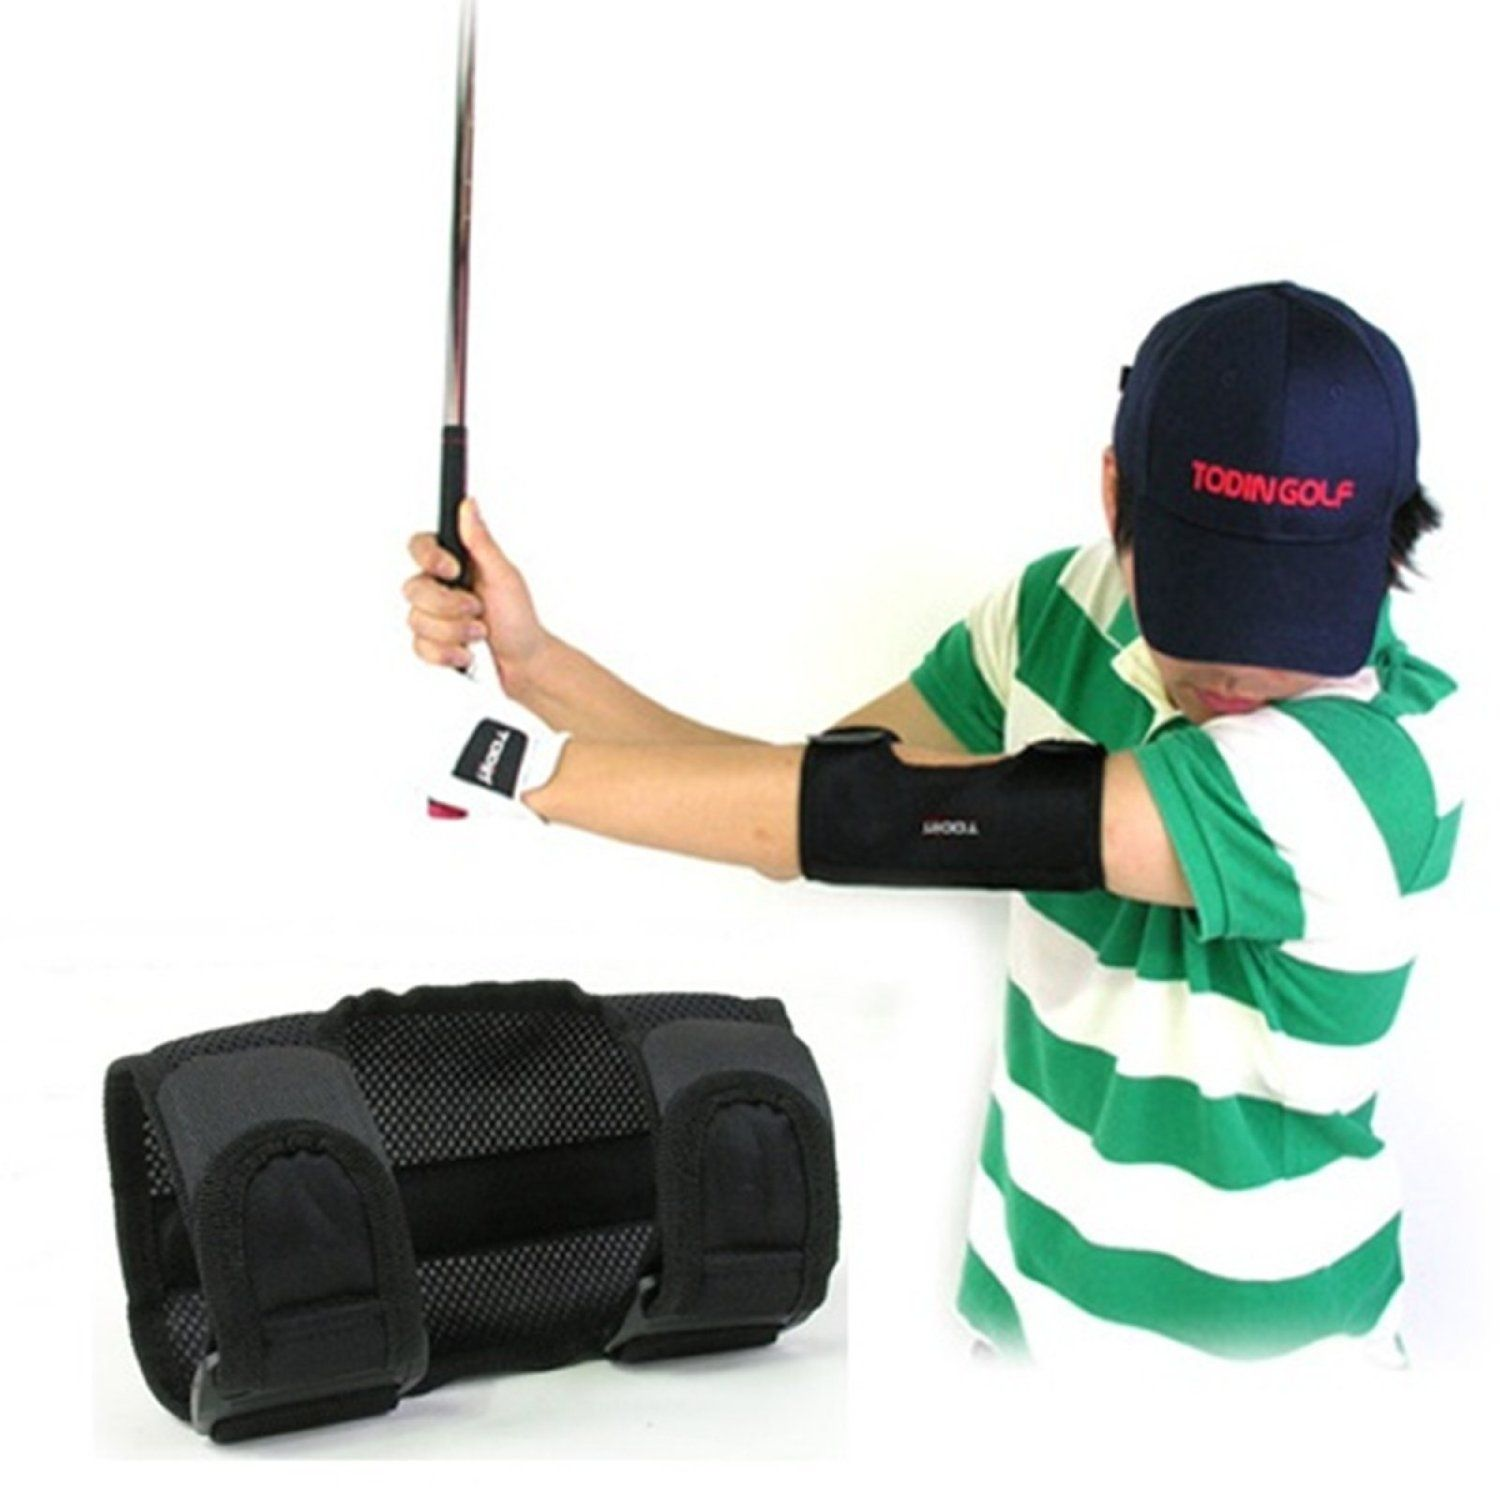 ame swing alignment made aid easy products training aids golf